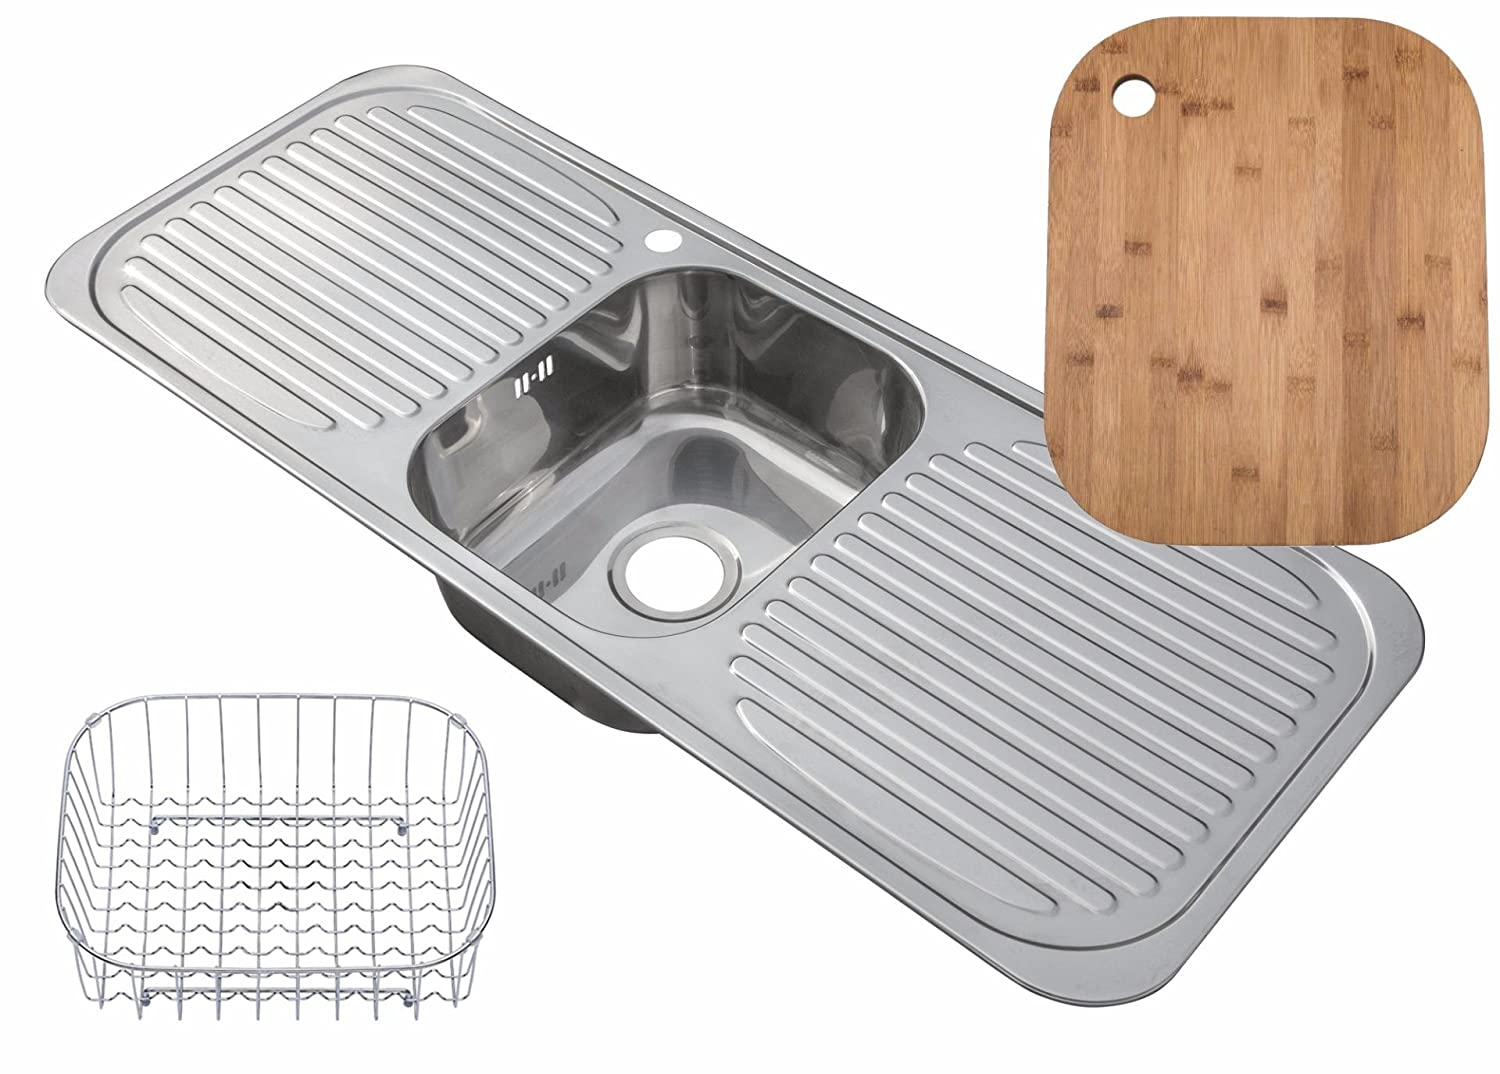 Inset Stainless Steel Single Bowl Kitchen Sink with 2 Drainers Large & Accessory Pack (C01)